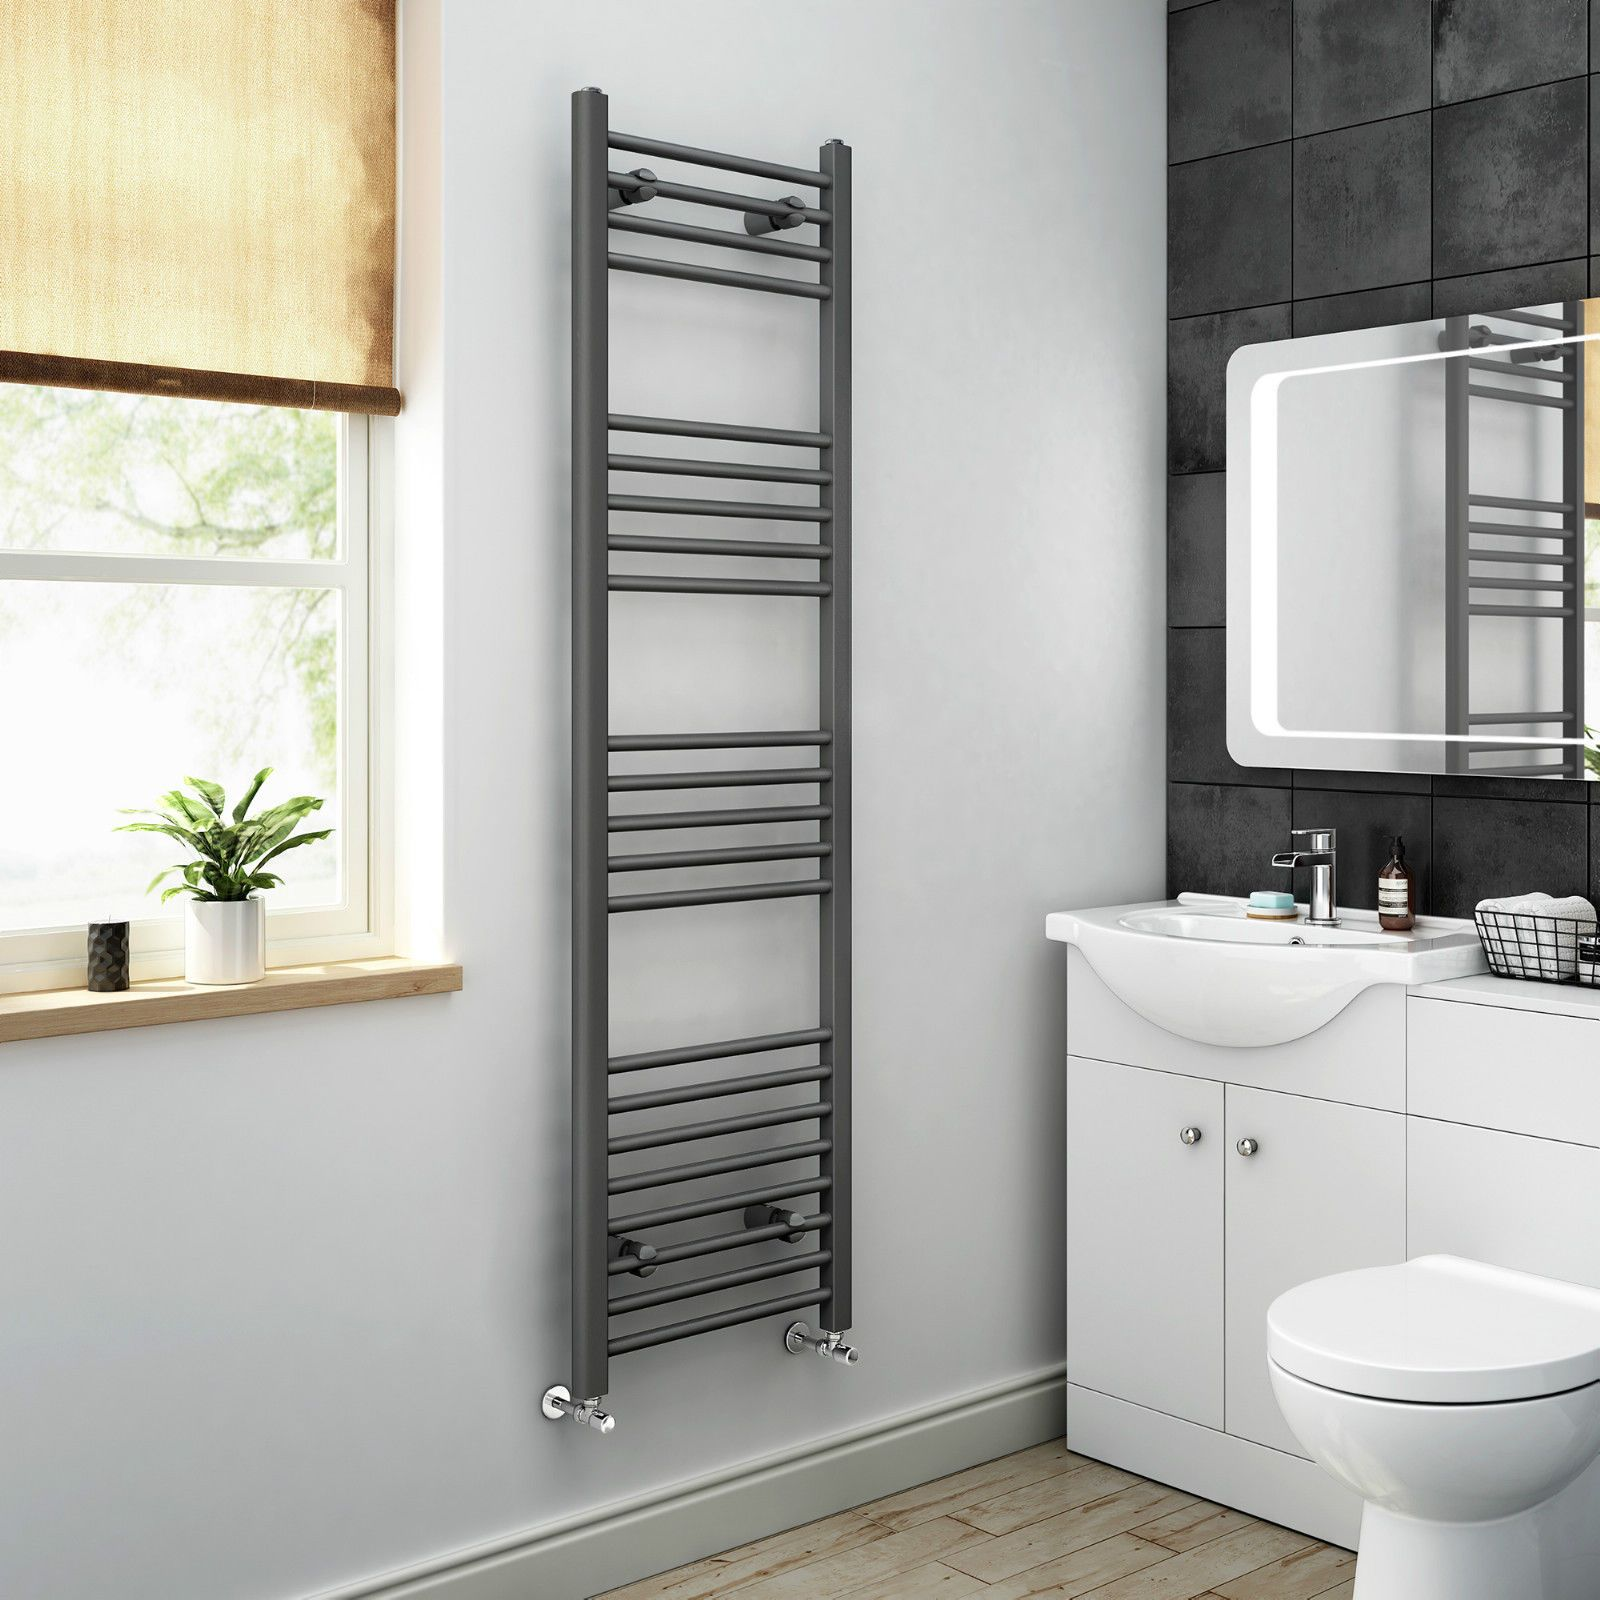 Towel Radiator Grey Anthracite Curved Heated Towel Rail Bathroom Radiators